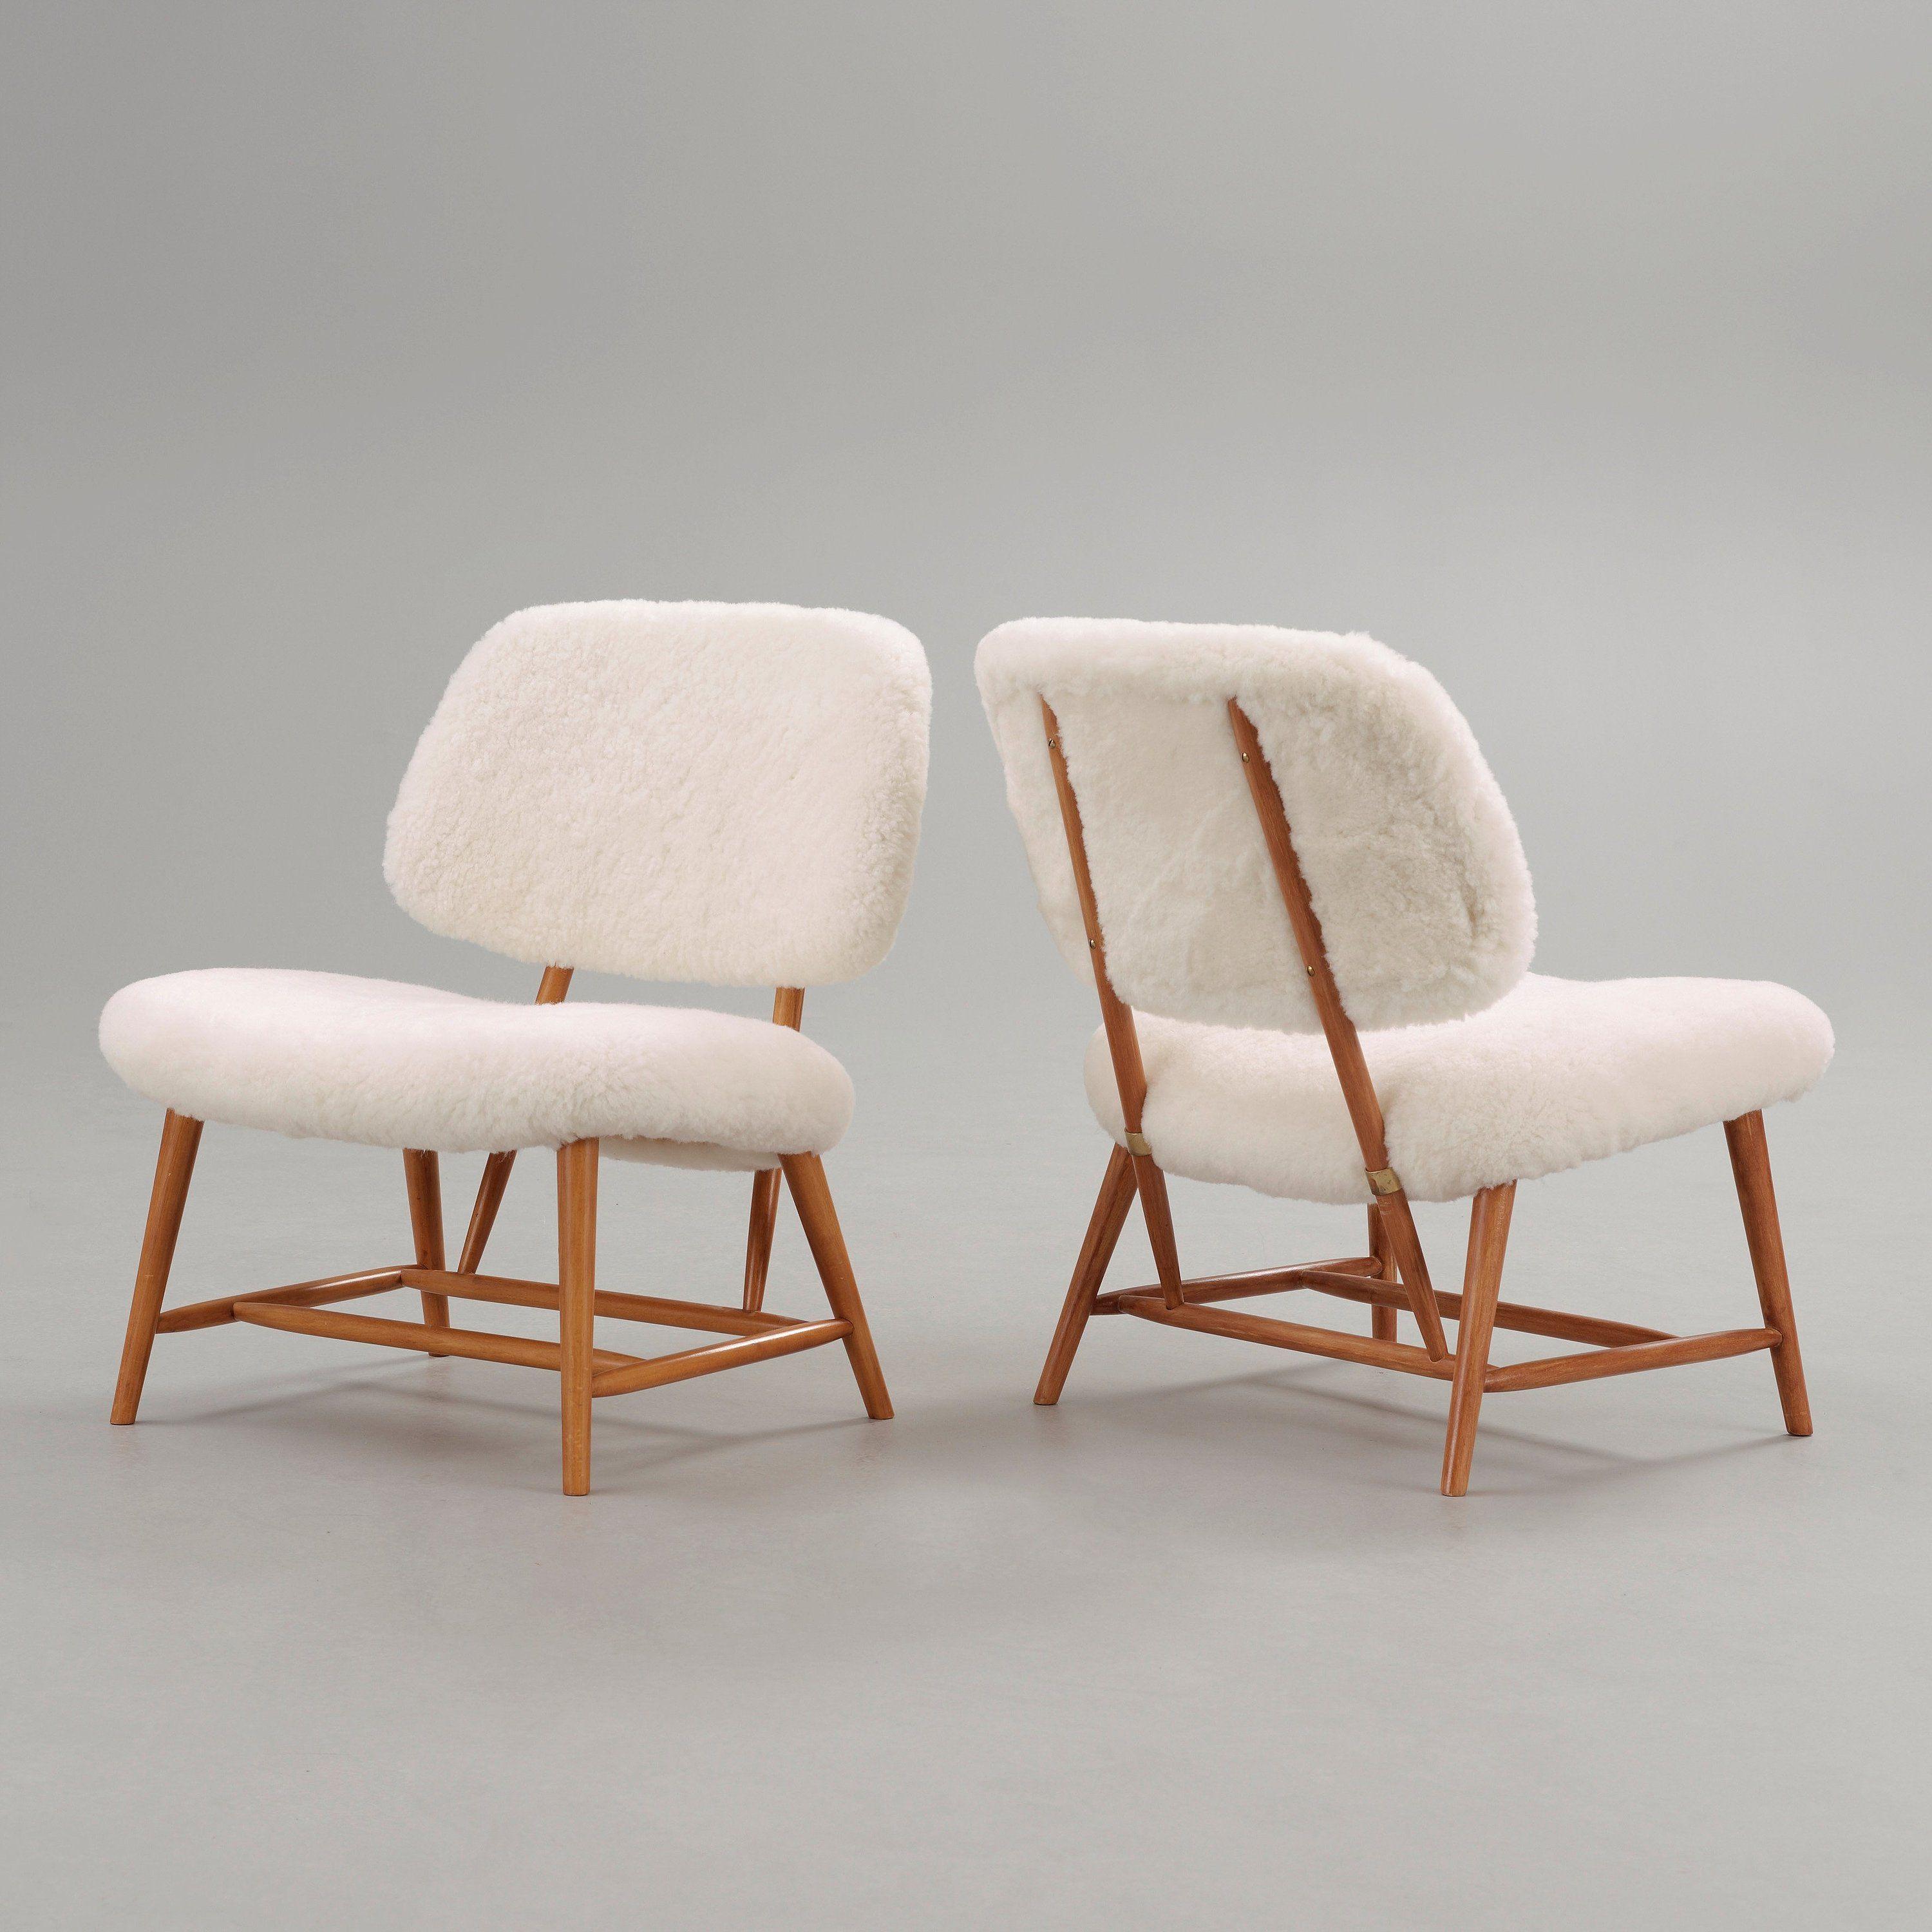 Alf Svensson Lounge Chairs for Ljungs Industrier 1950s